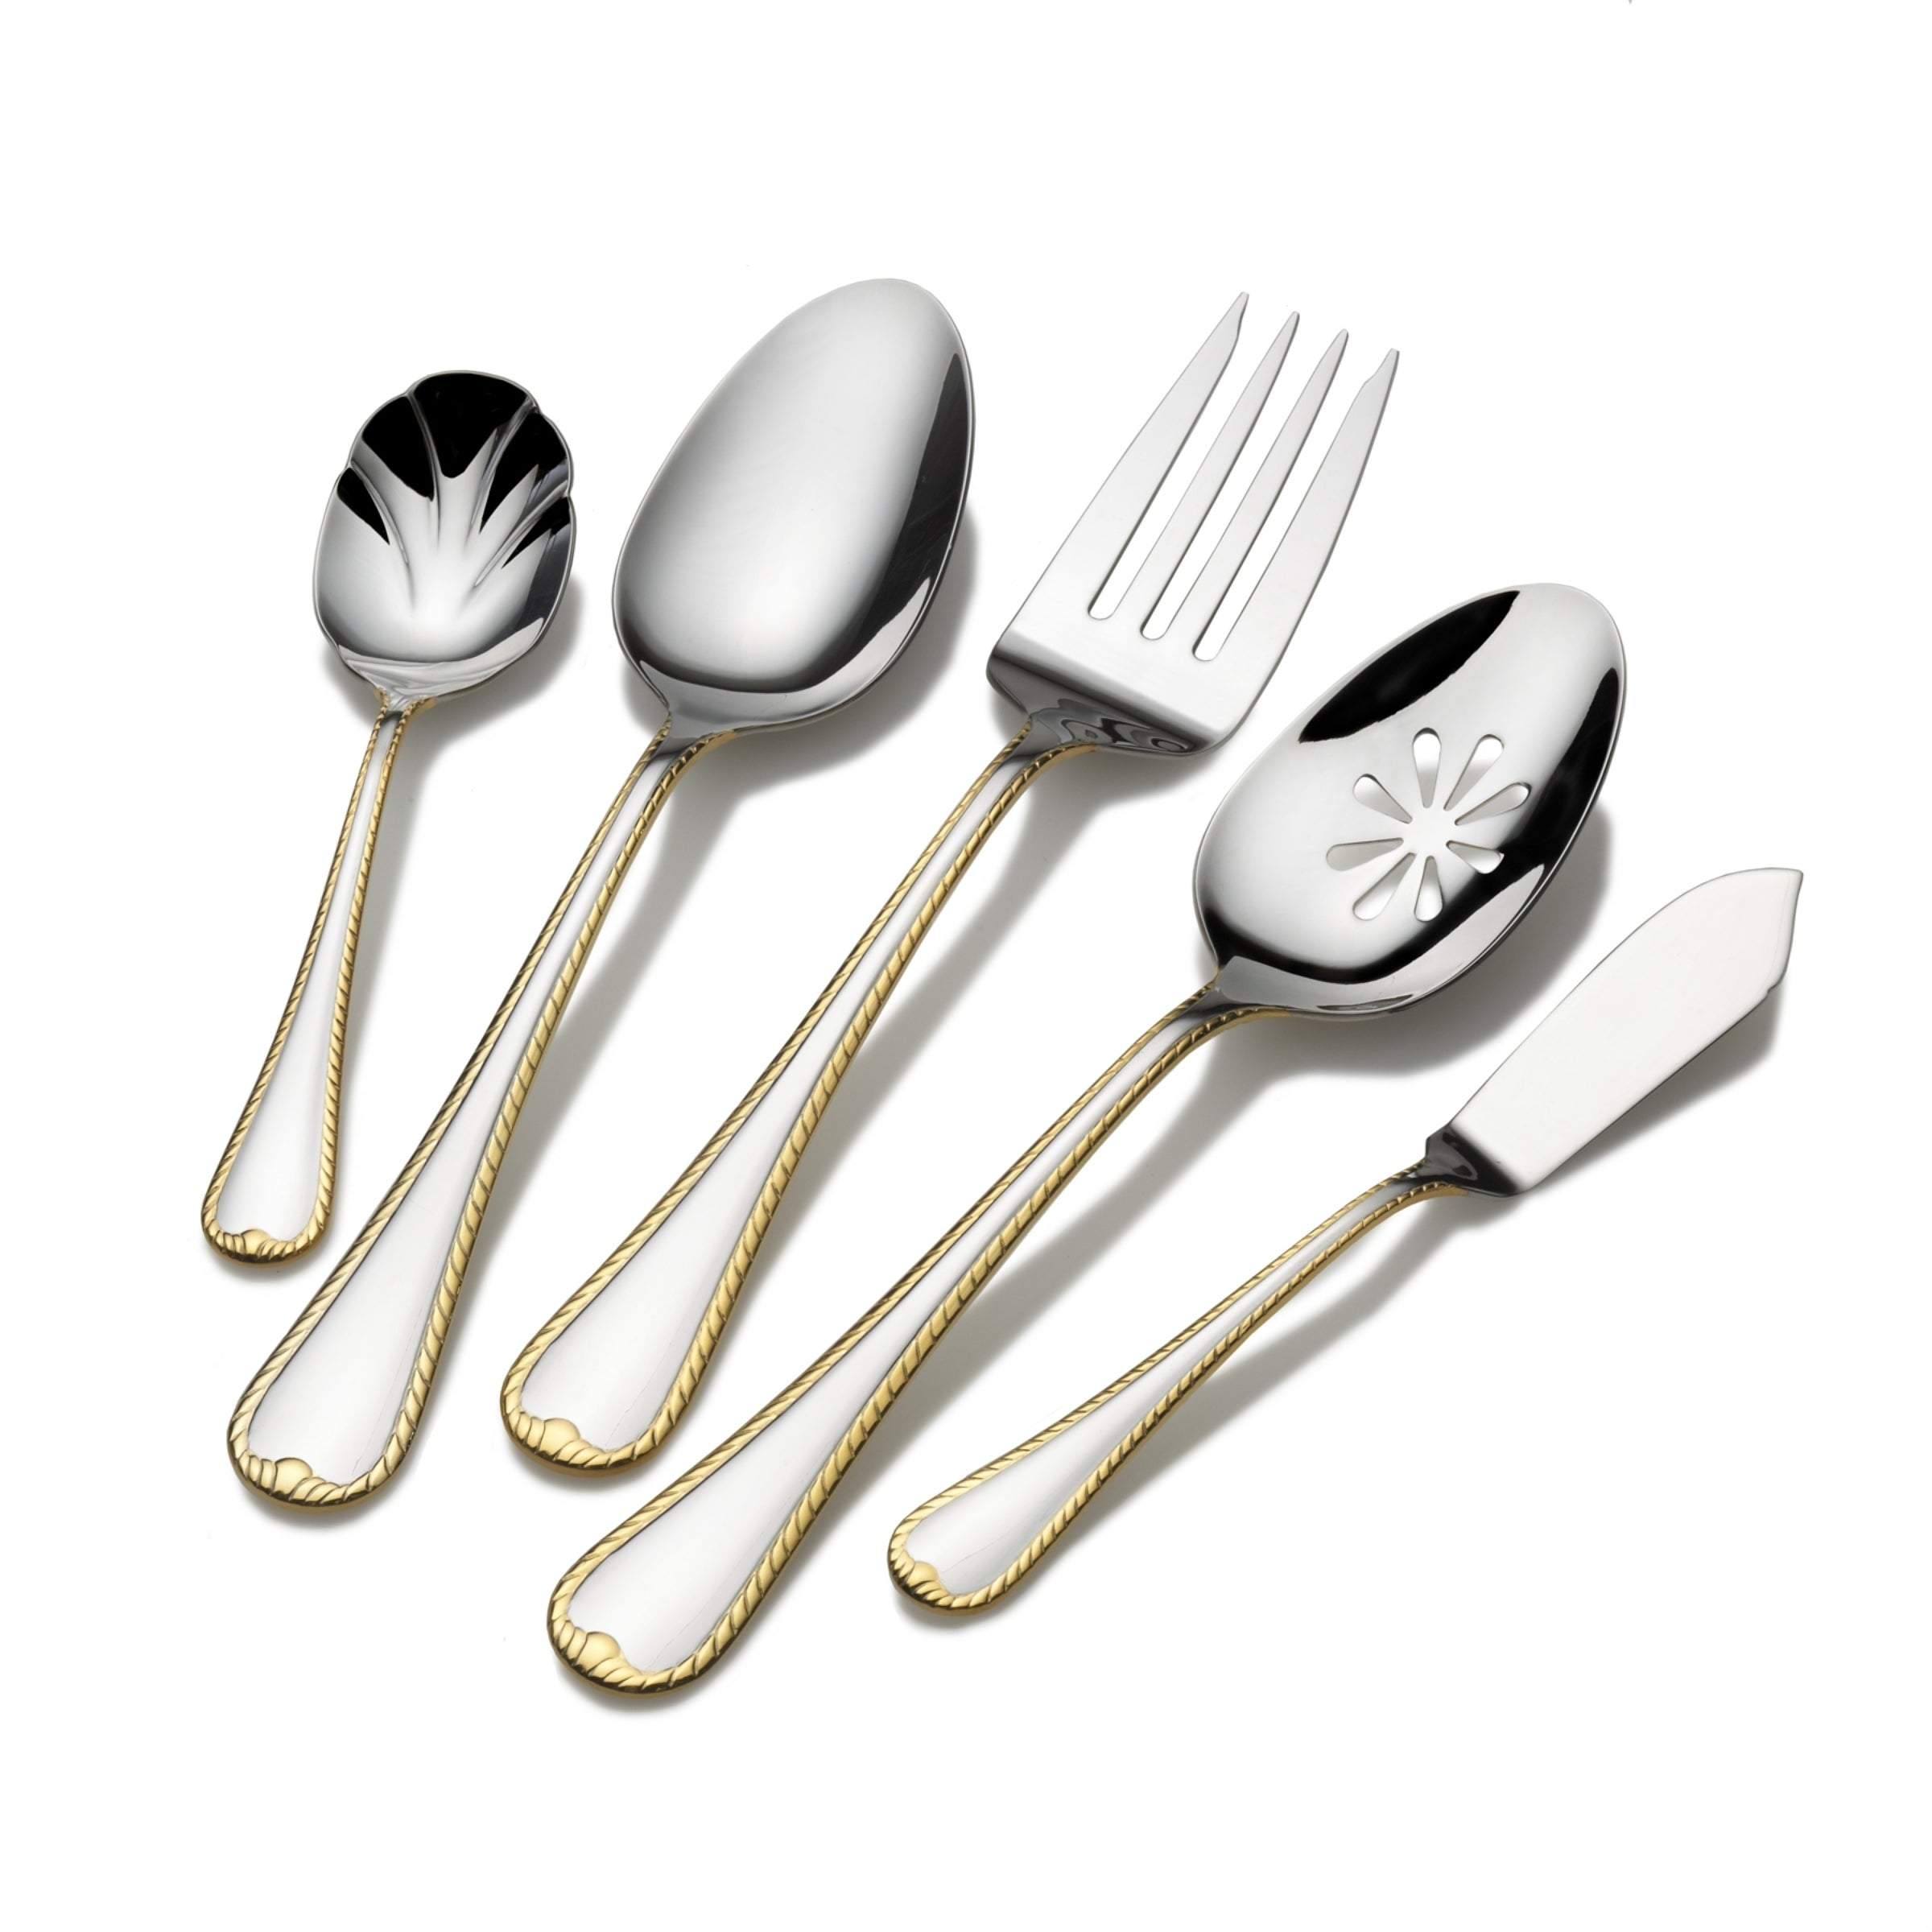 Gold Accent Cameo 65 Piece Flatware Set